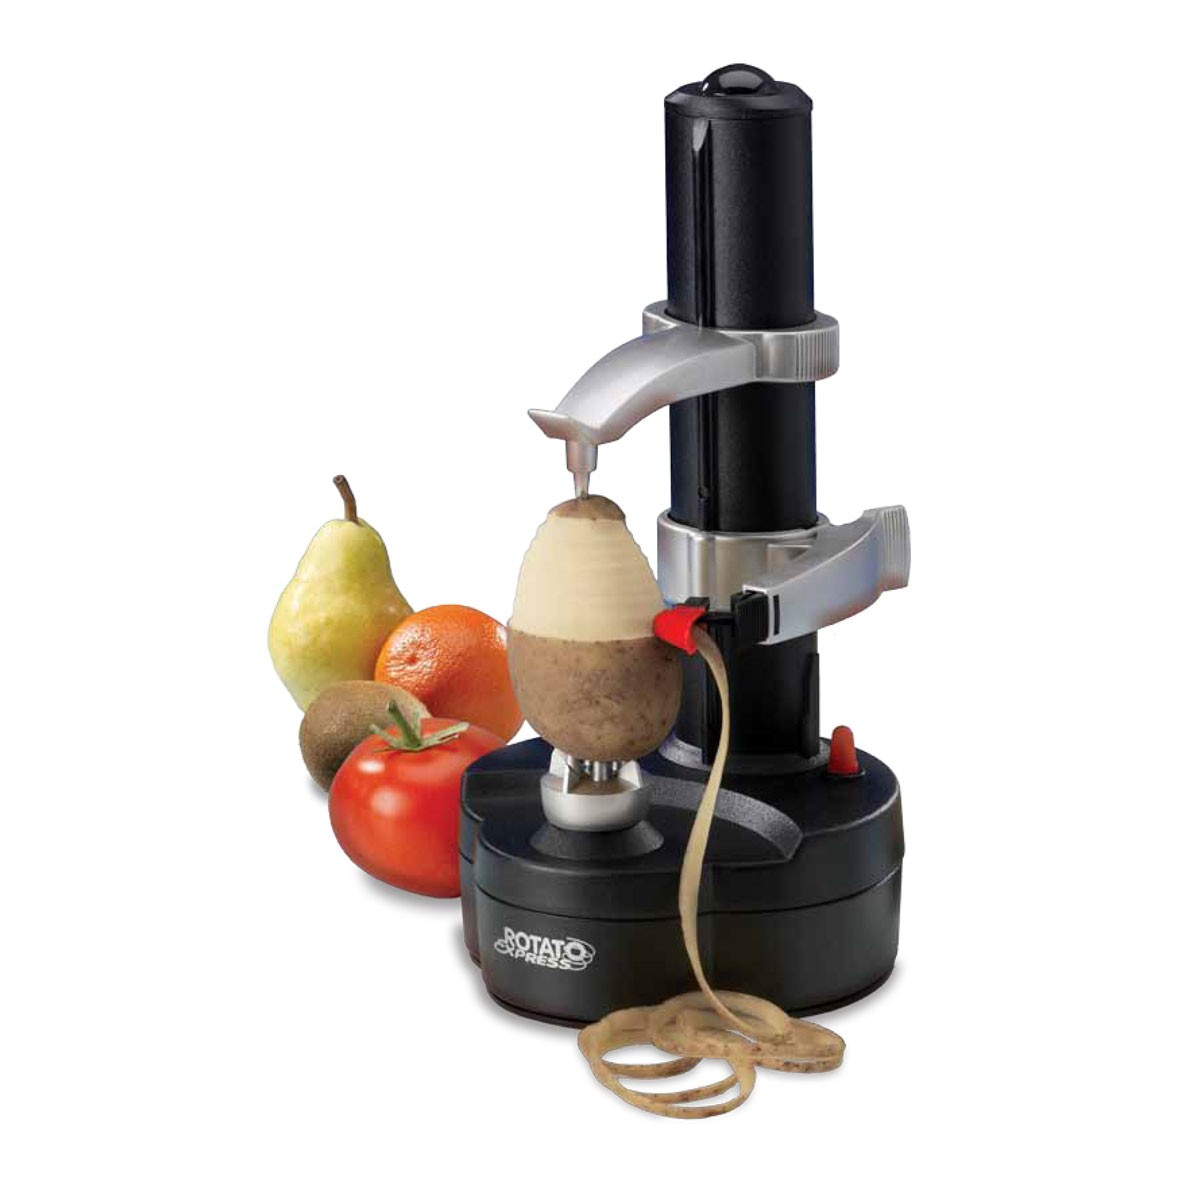 Electric Potato Slicer ~ Best apple peelers and corers for fall